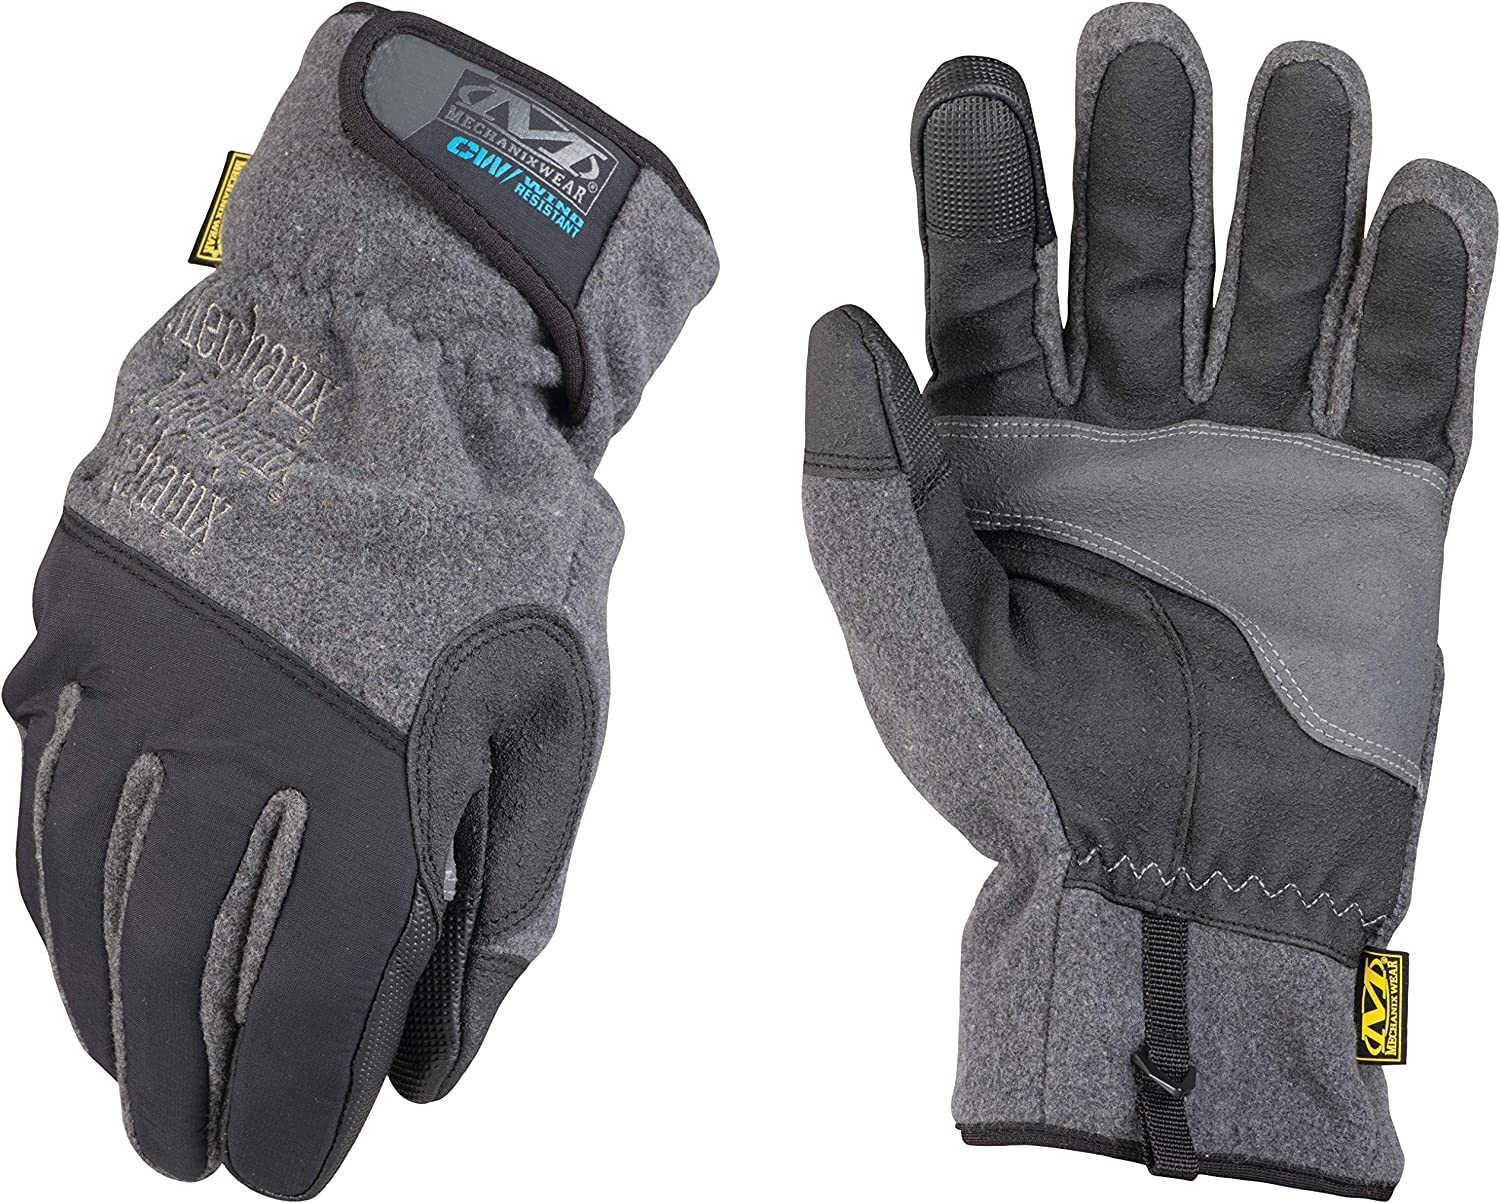 Winter Work Gloves for Men by Mechanix Wea